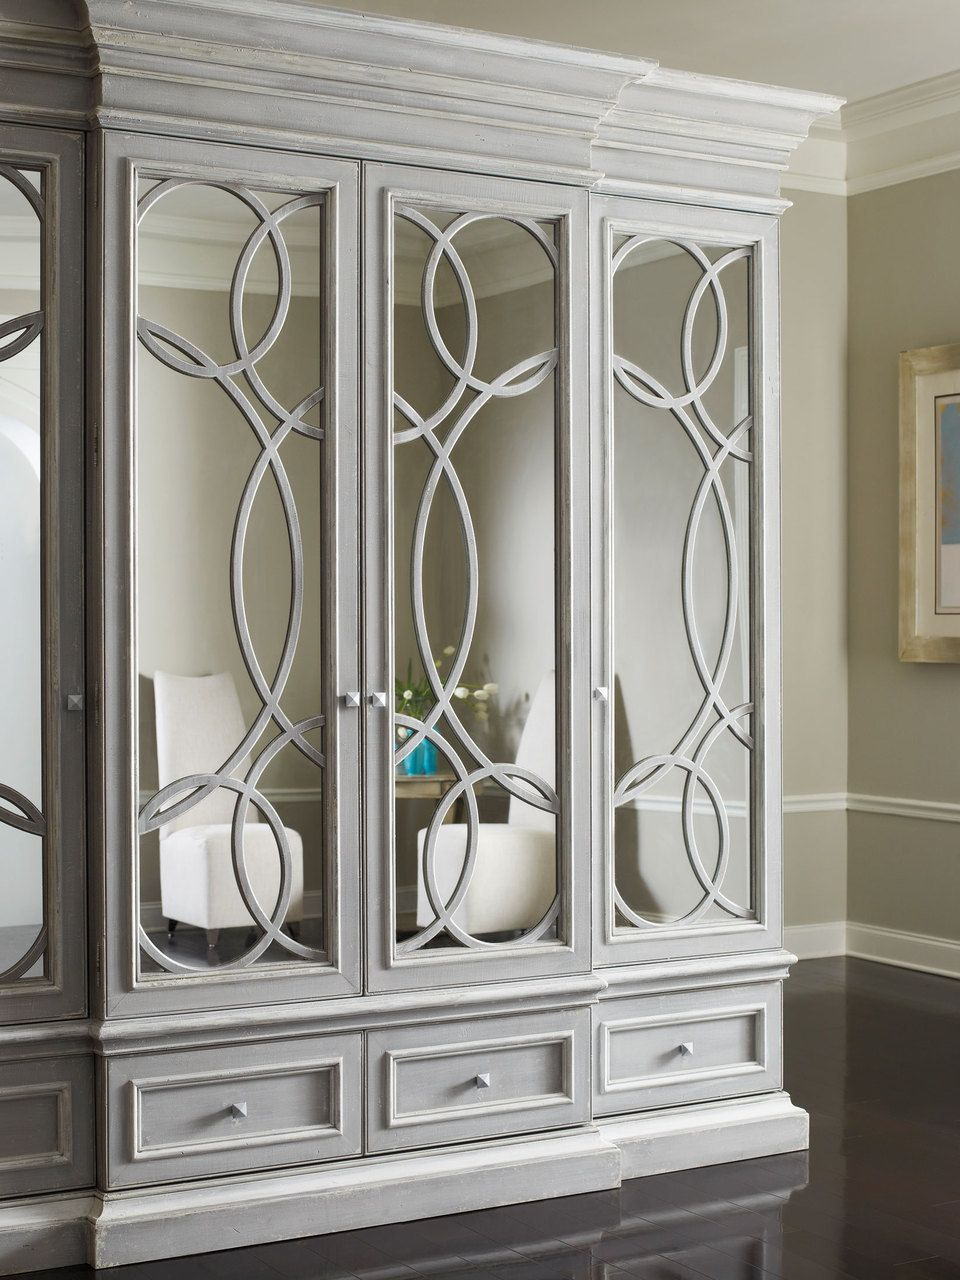 This East Hampton Media Cabinet With Mirrored Doors By Habersham Would Be An Elegant Way To Hid Mirrored Cabinet Doors Habersham Furniture Living Room Cabinets